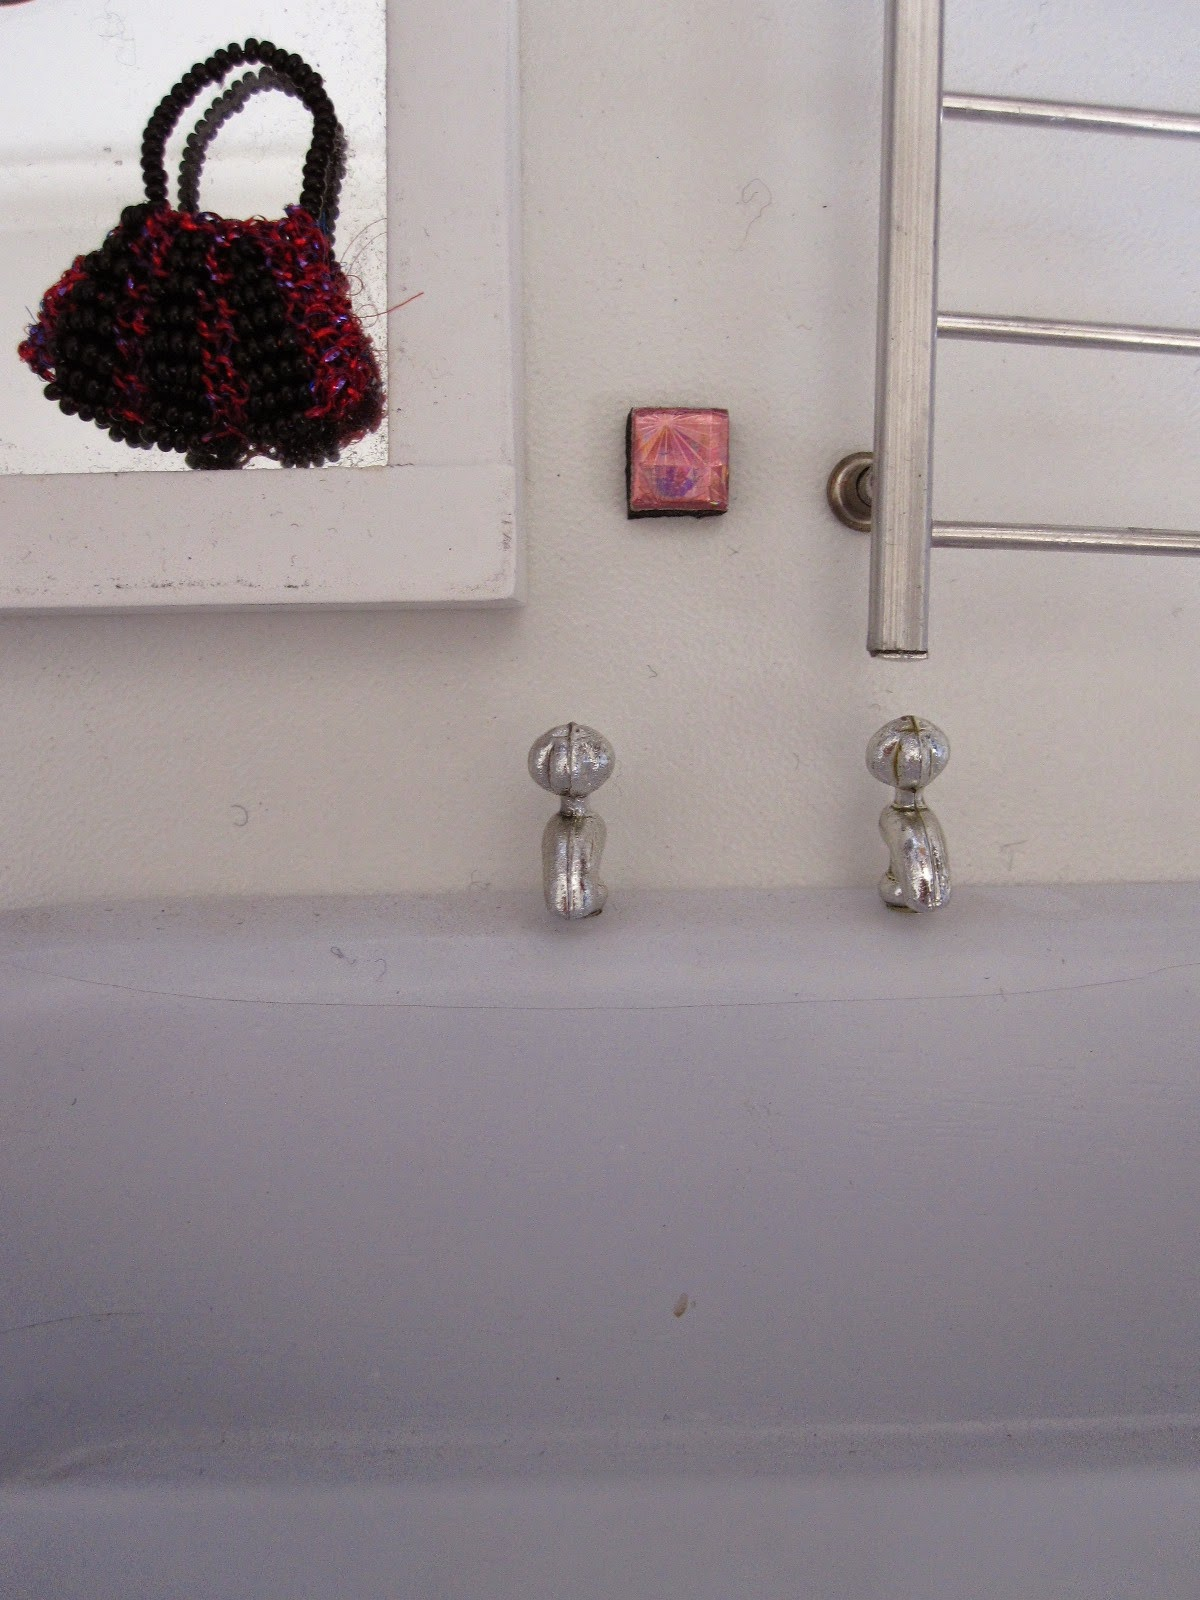 Dolls house miniature bath, mirror and heated towel rail. On the mirror is a beaded bag and on the wall is a tiny pinky-silver tile.